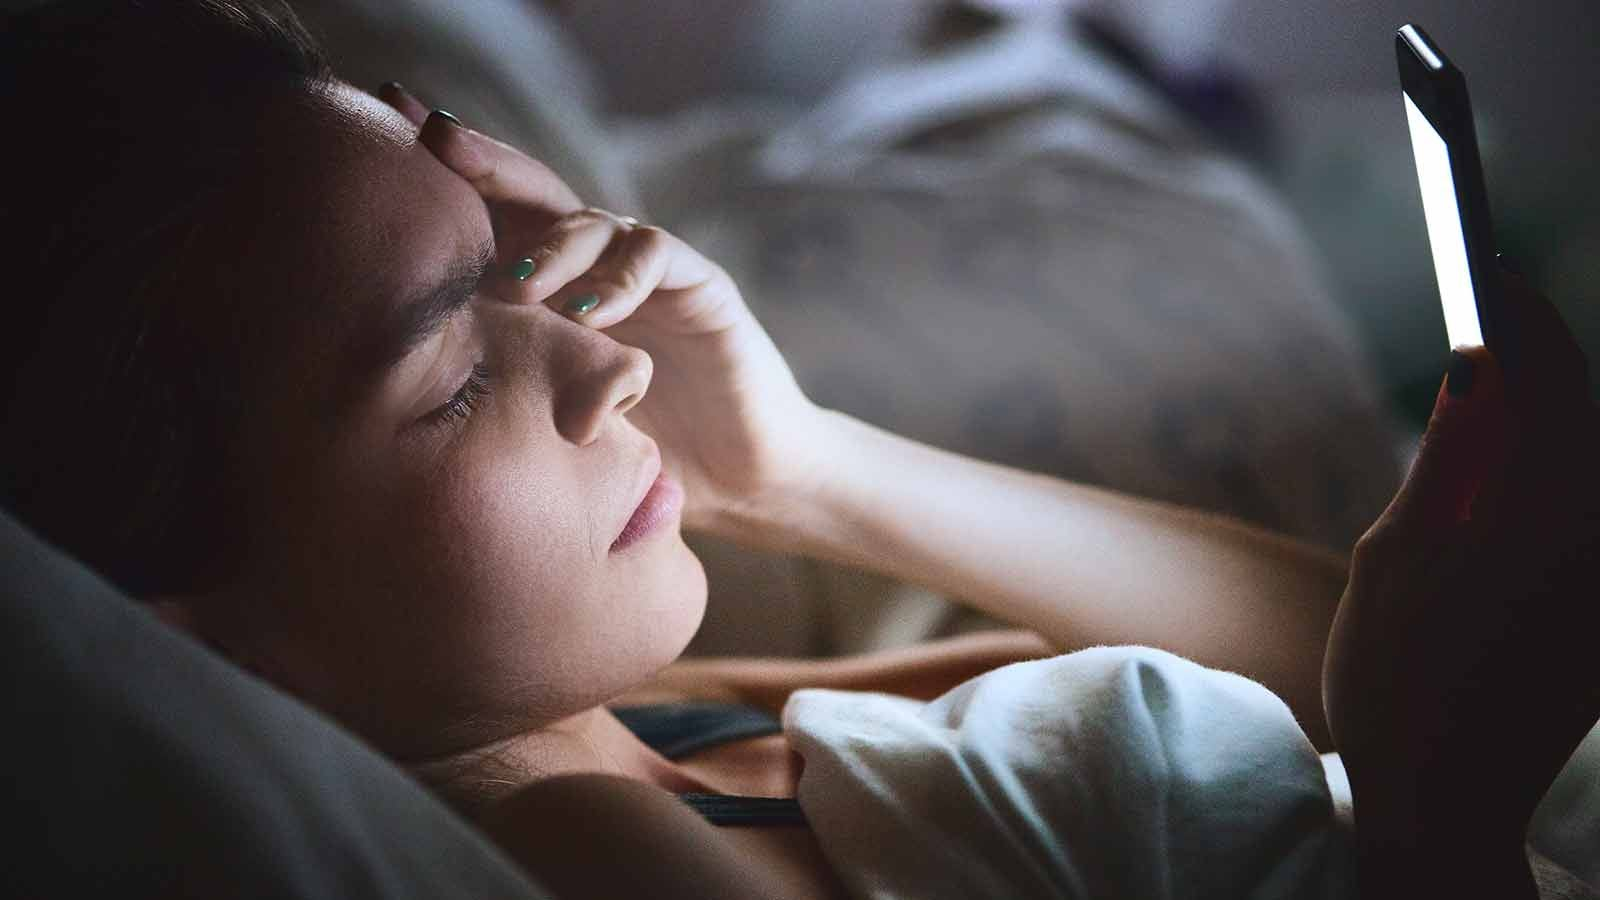 Woman looking at her phone in the middle of the night